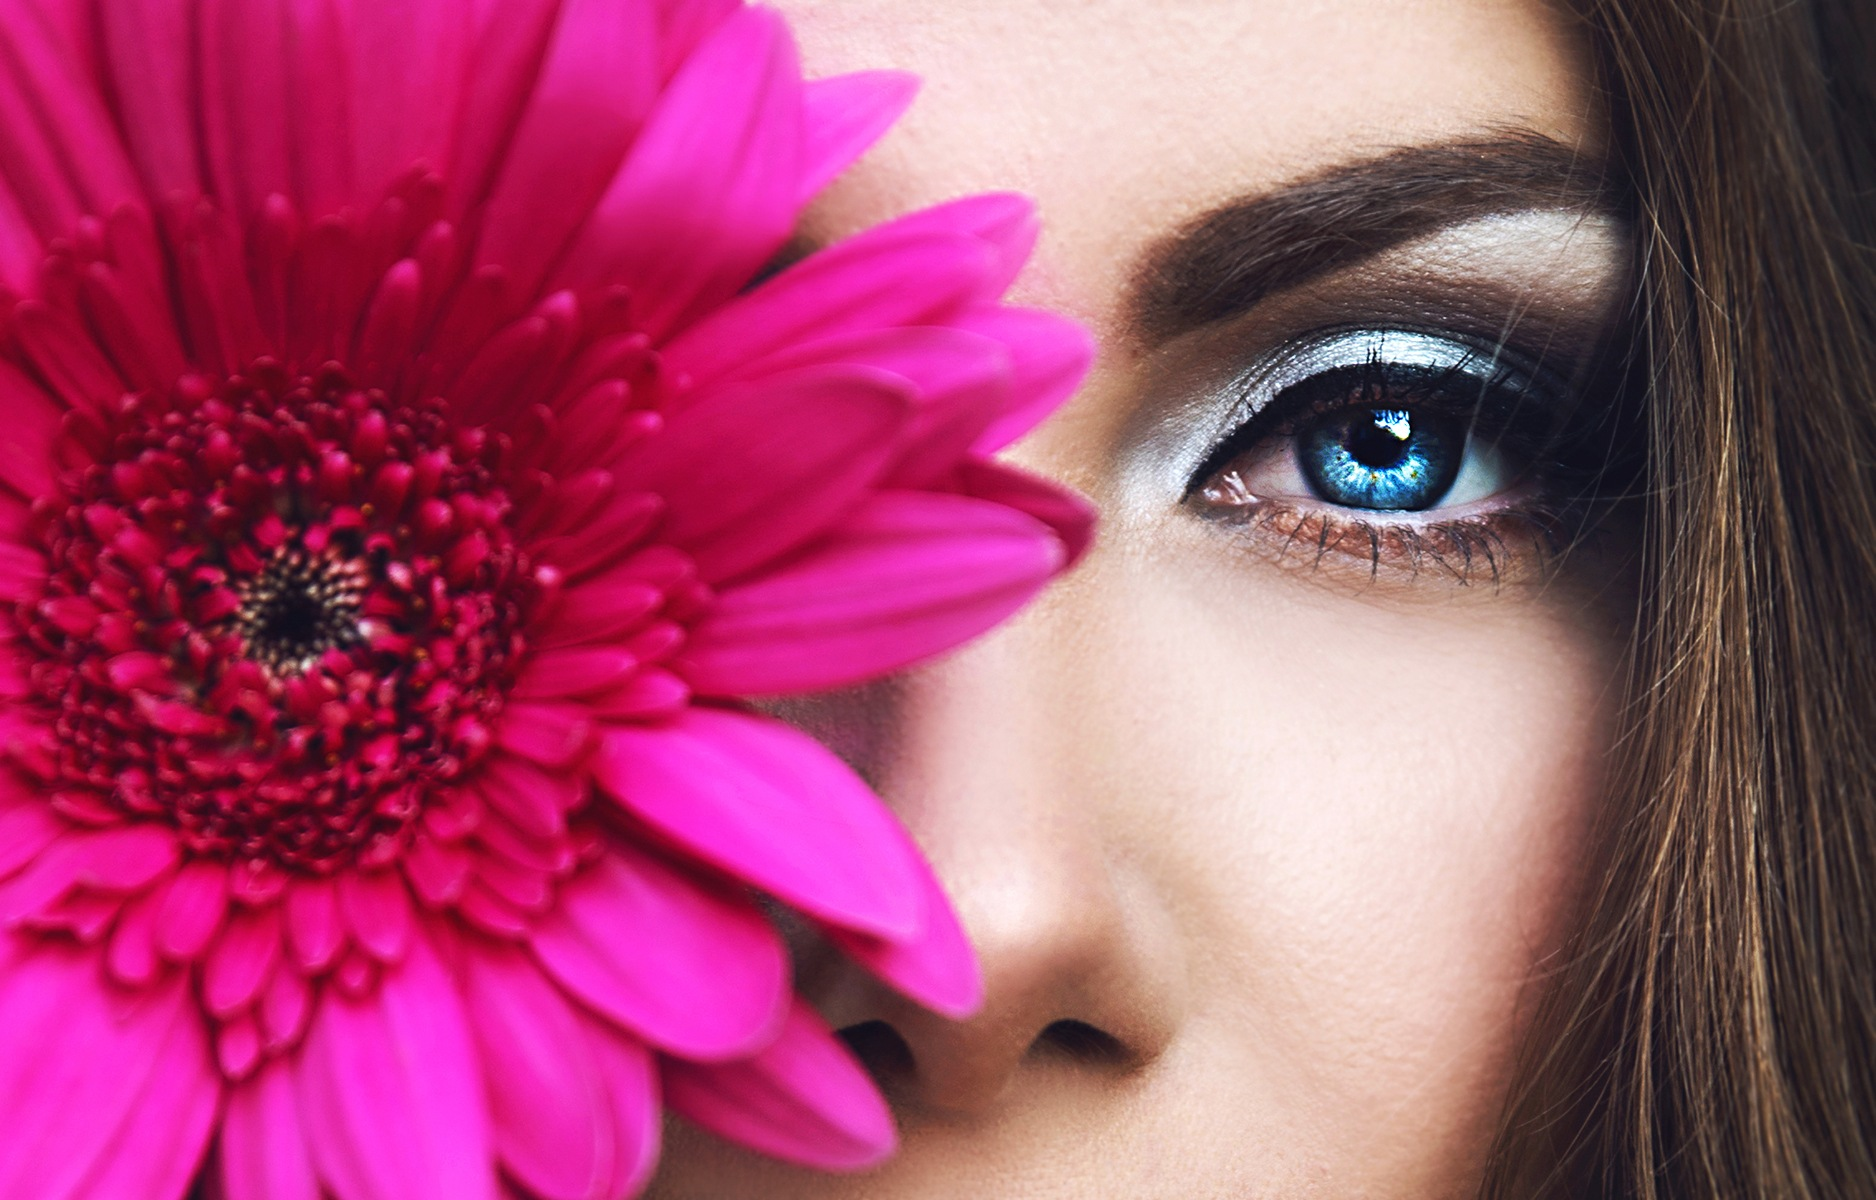 Hypnotizing eye by Alexandra Sashka